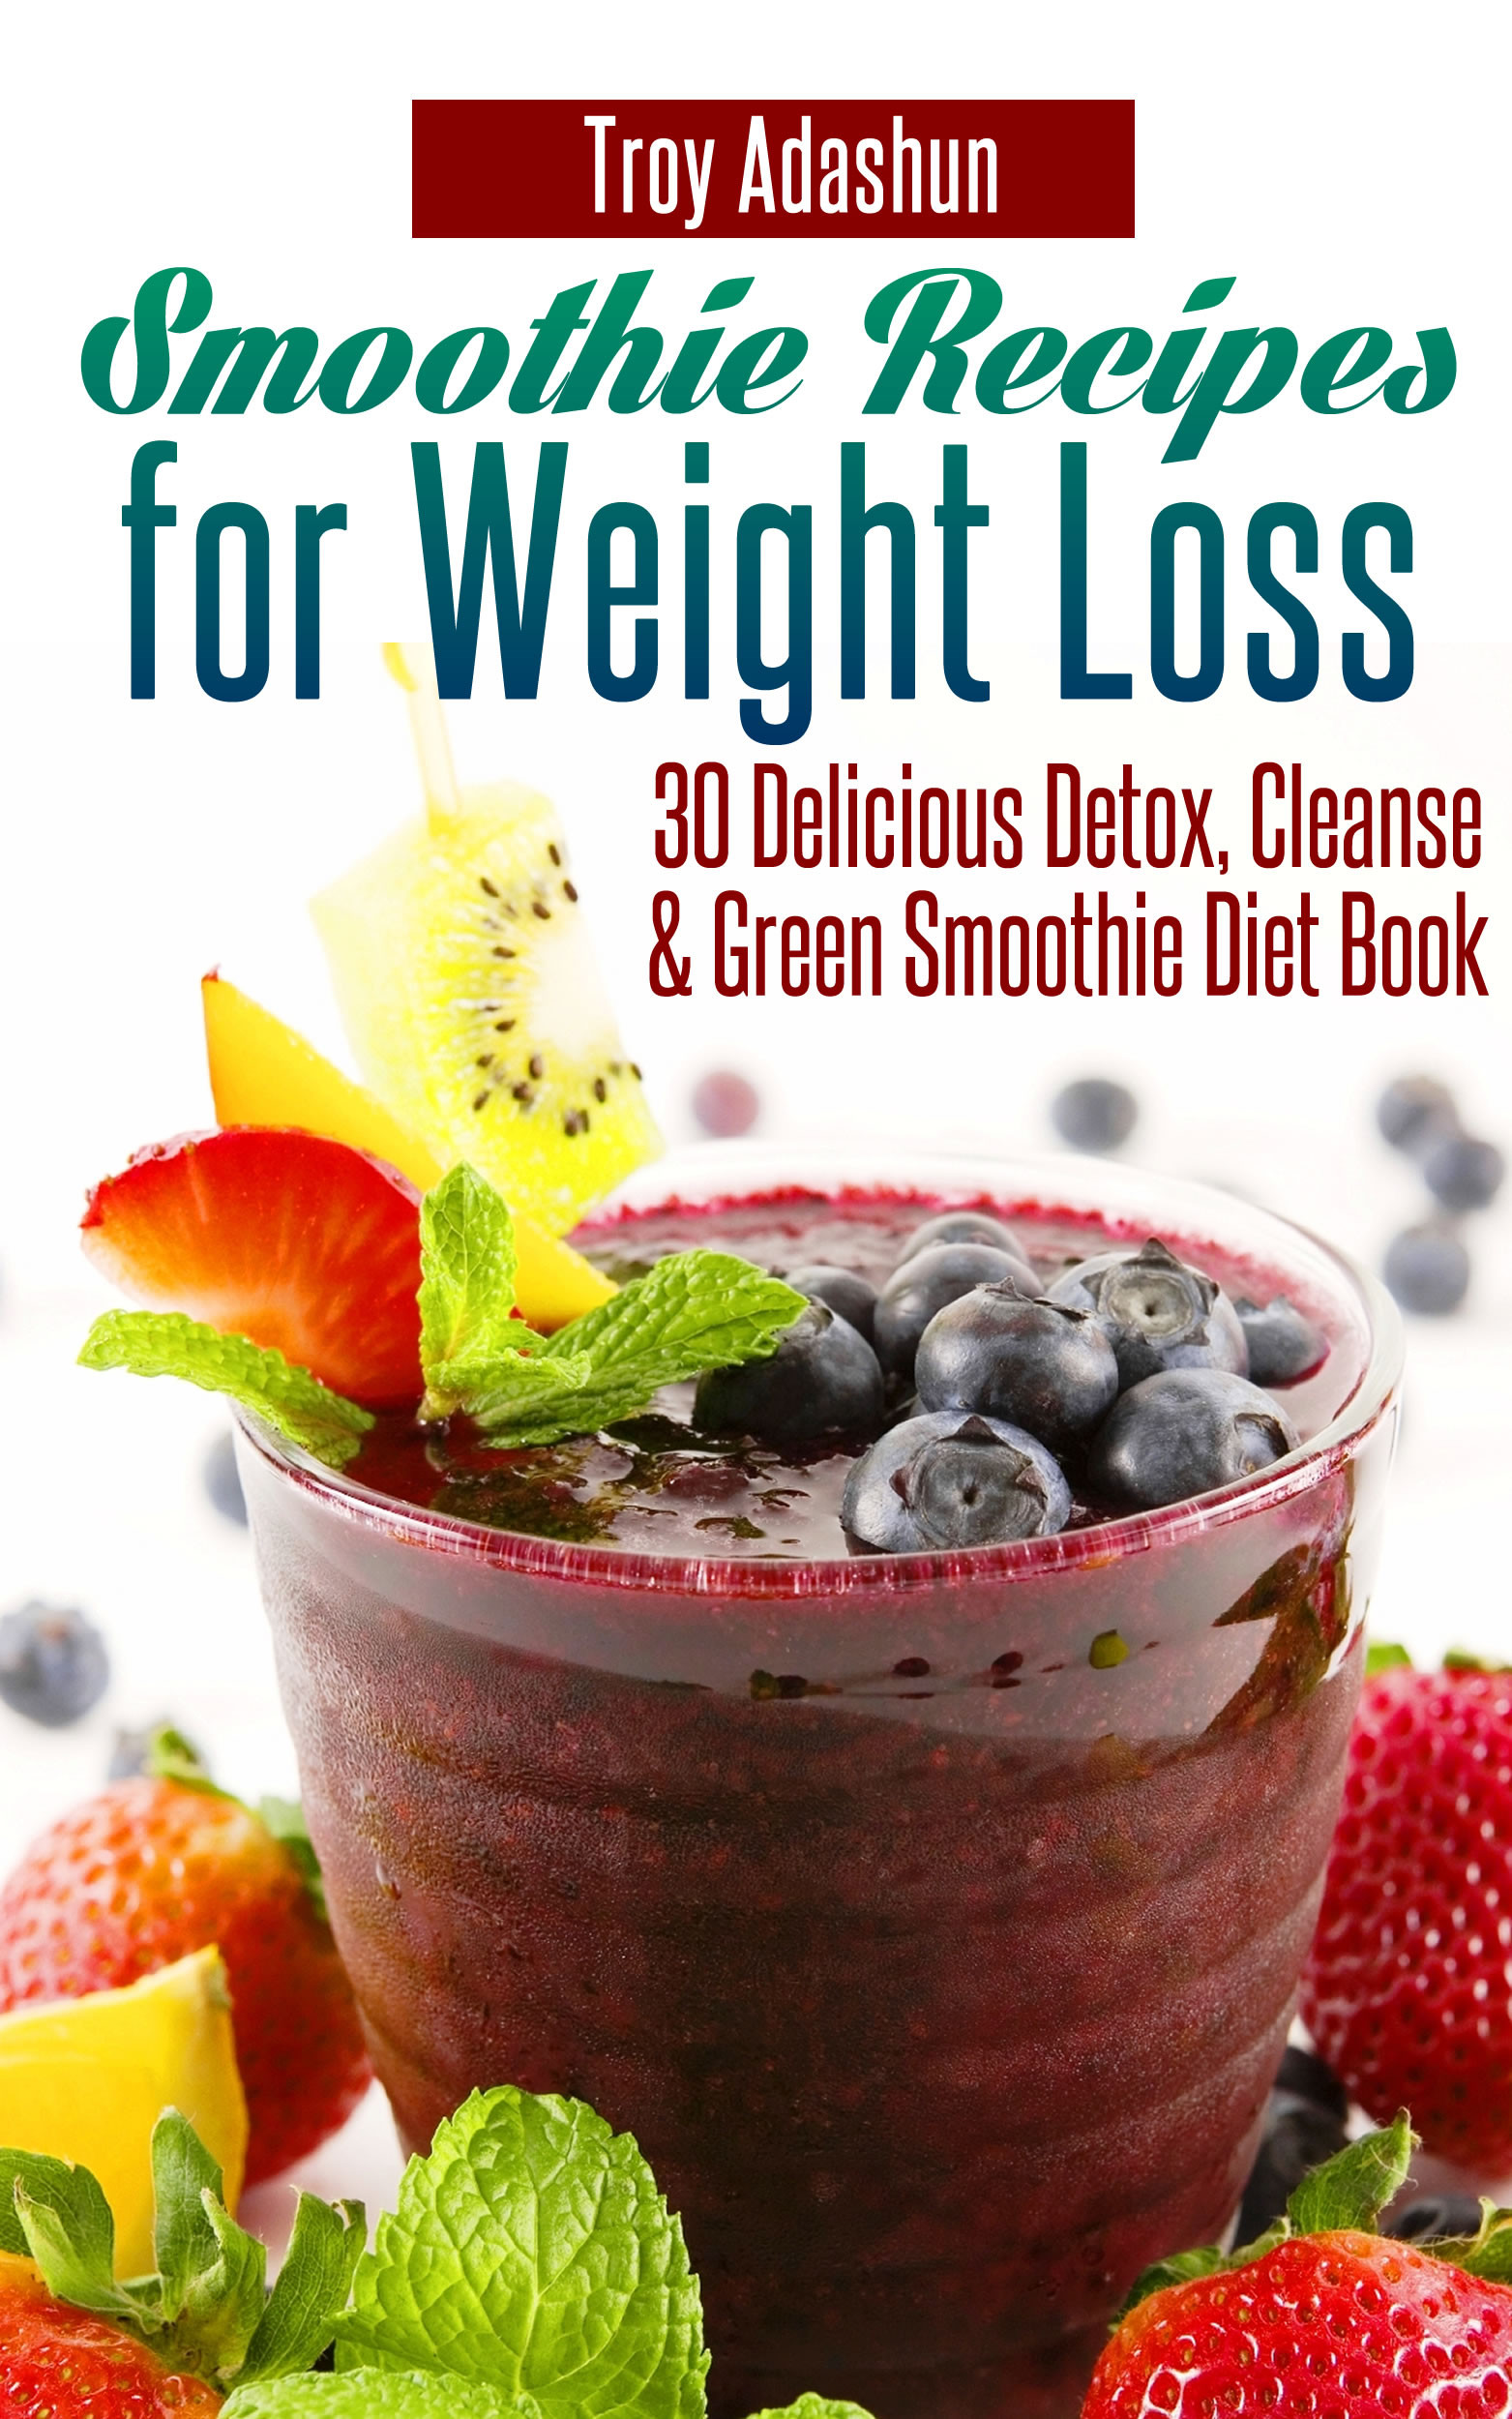 Detox Smoothie Recipes For Weight Loss  Smashwords – Smoothie Recipes for Weight Loss 30